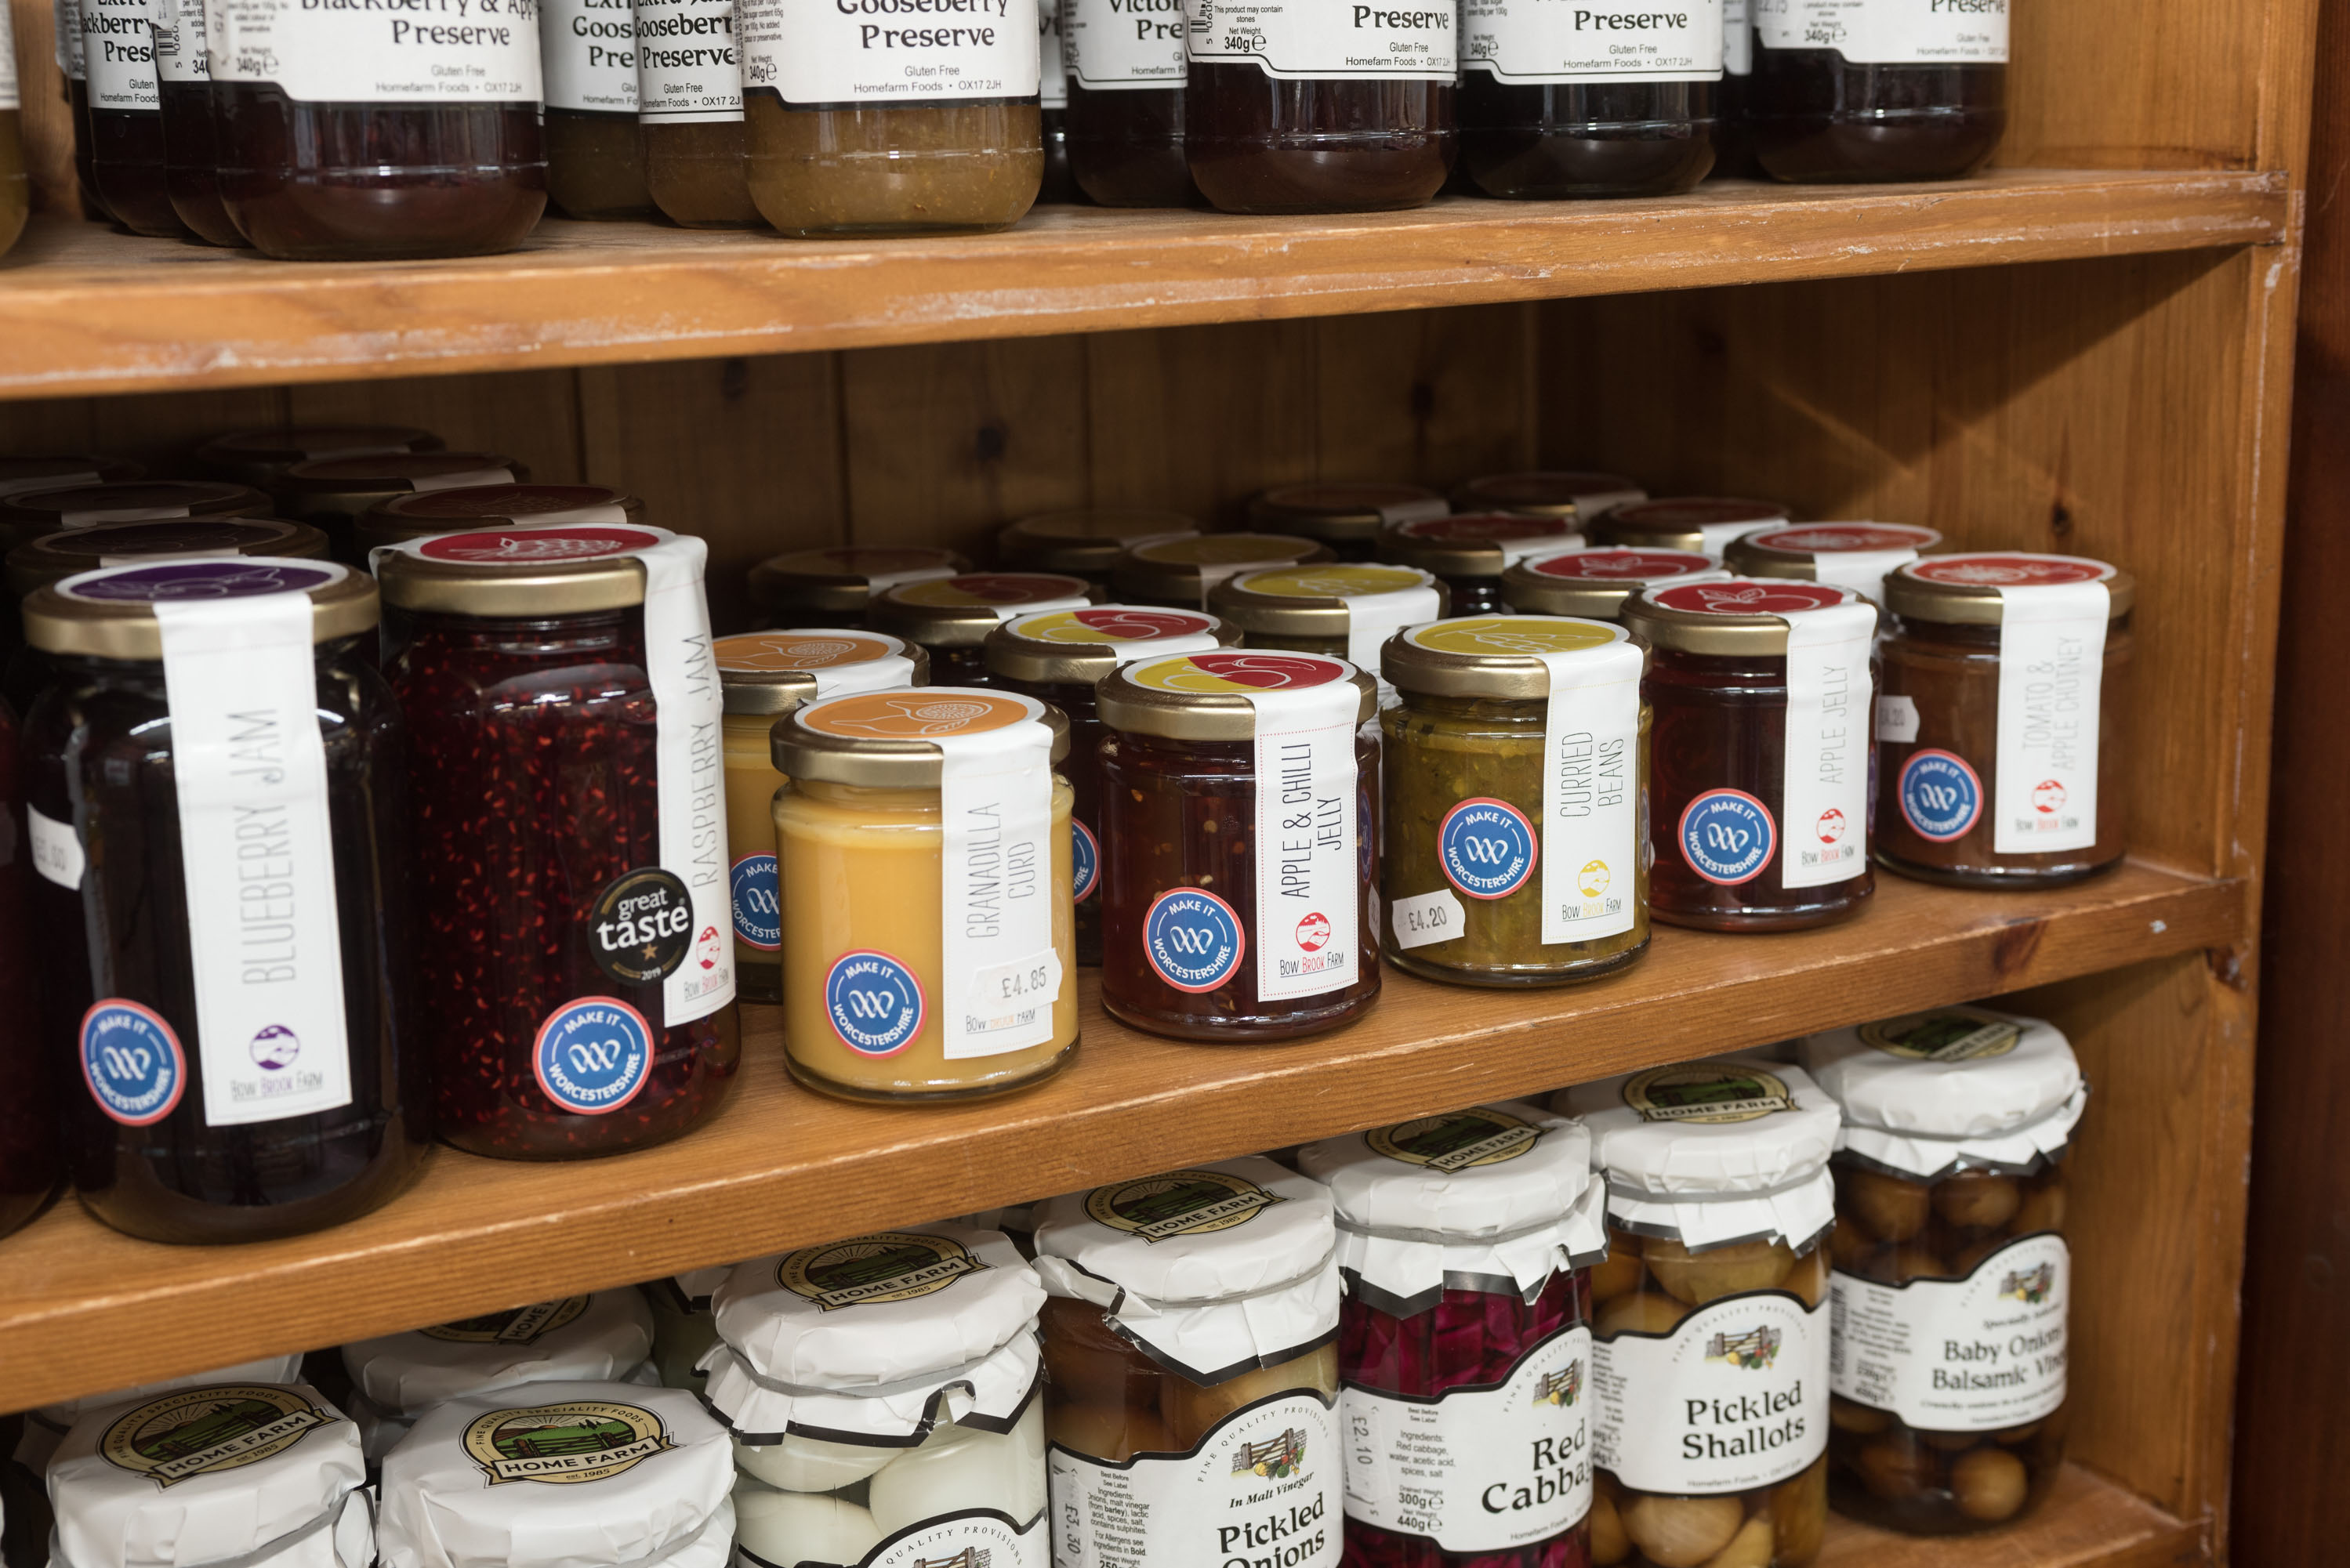 Selection of jams on a shelf branded with the Make It Worcestershire campaign sticker.